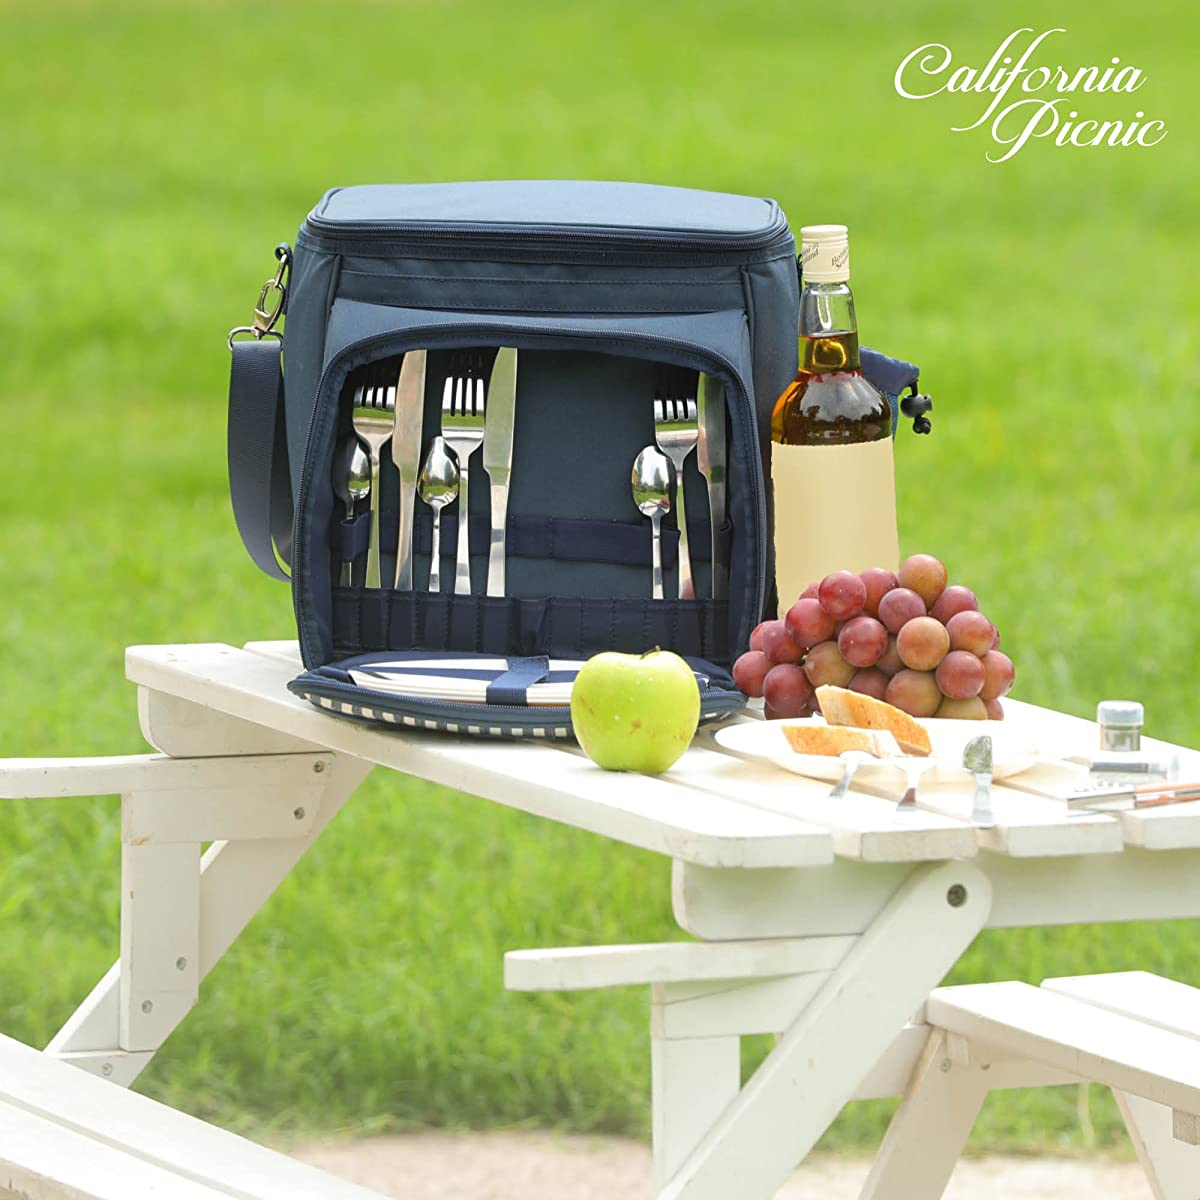 Picnic Basket Tote | Picnic Shoulder Bag Set | Stylish All-in-One Portable Picnic Bag for 4 with Complete Cutlery Set | Salt/Pepper Shakers | Cheese Board | Cooler Bag for Camping | Insulated Tote Bag